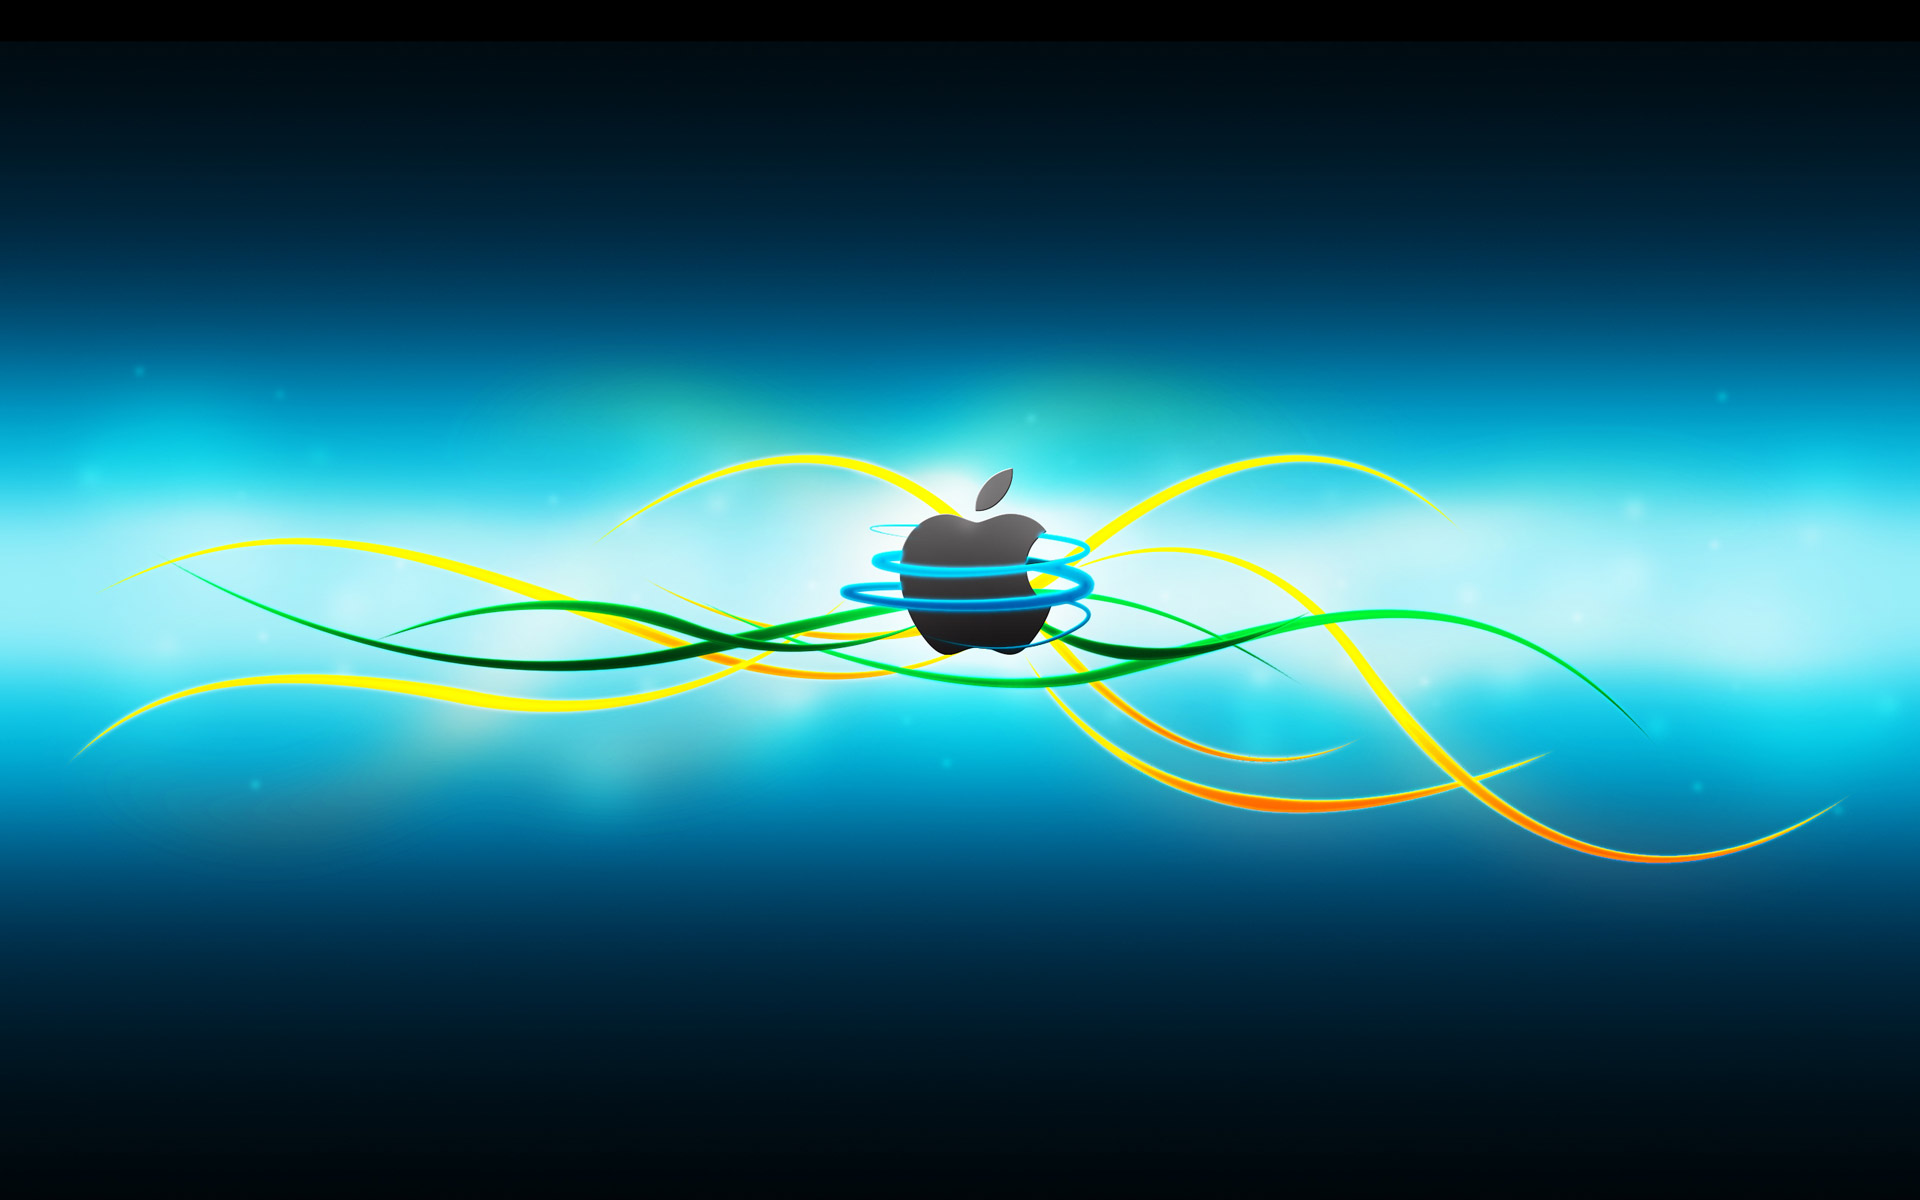 50 Inspiring Apple Mac iPad Wallpapers For Download 1920x1200